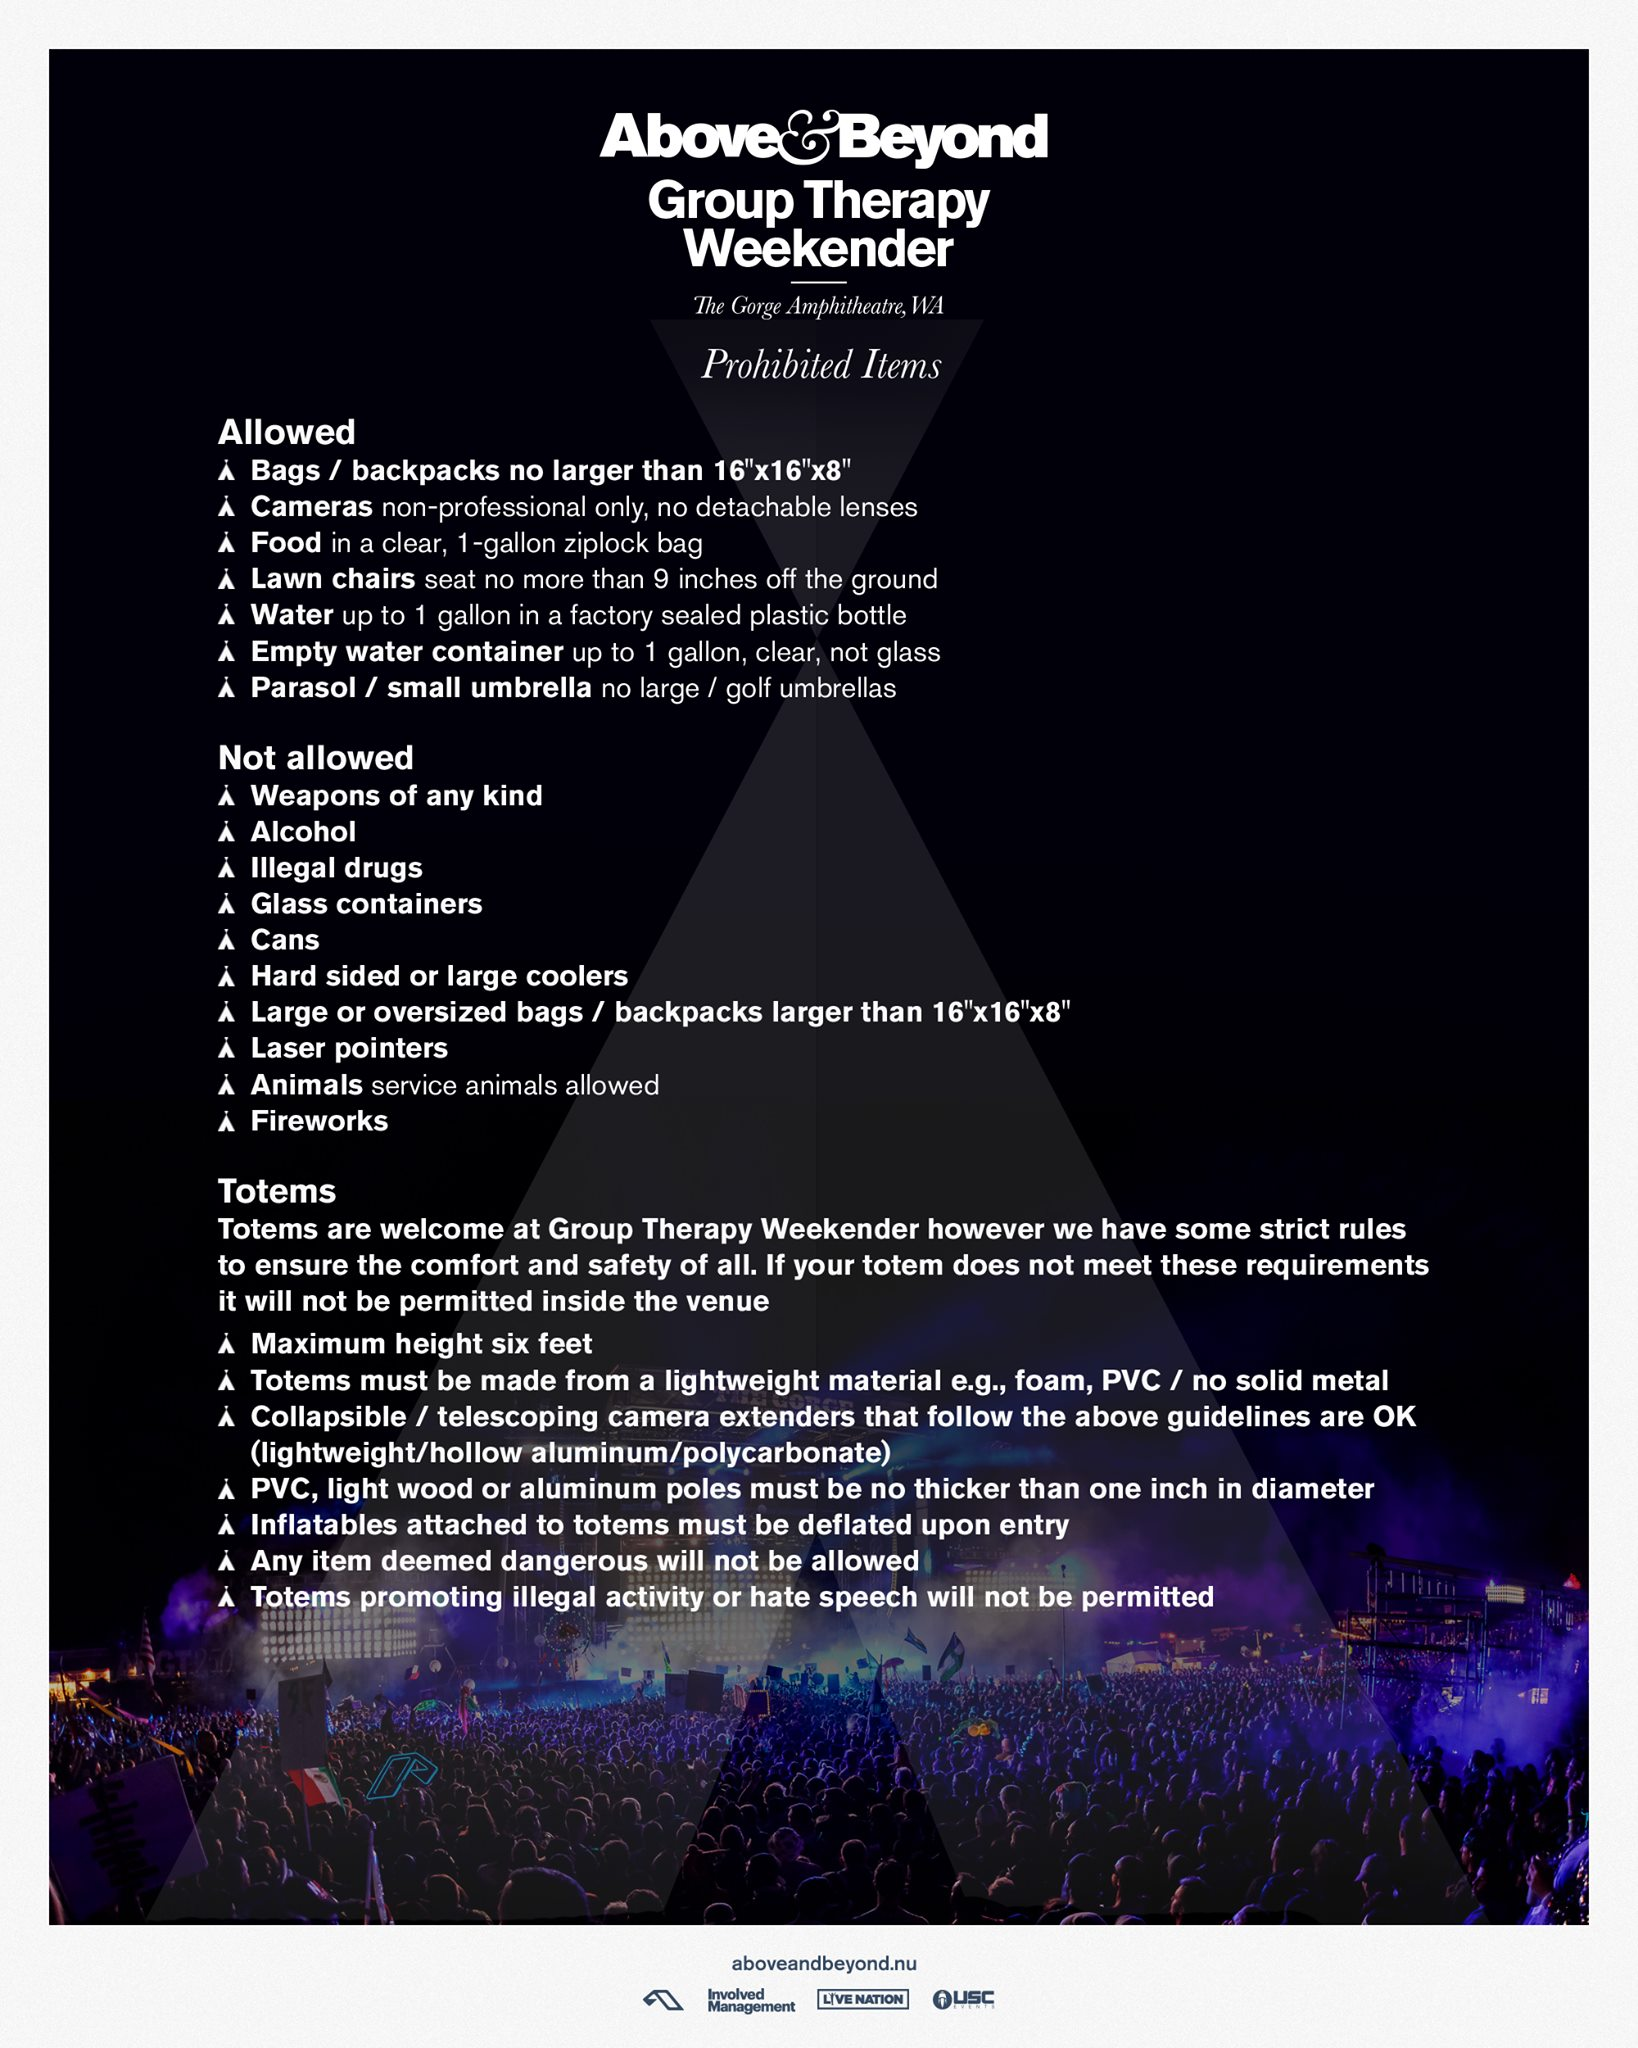 Group Therapy Weekender 2019 Prohibited Items